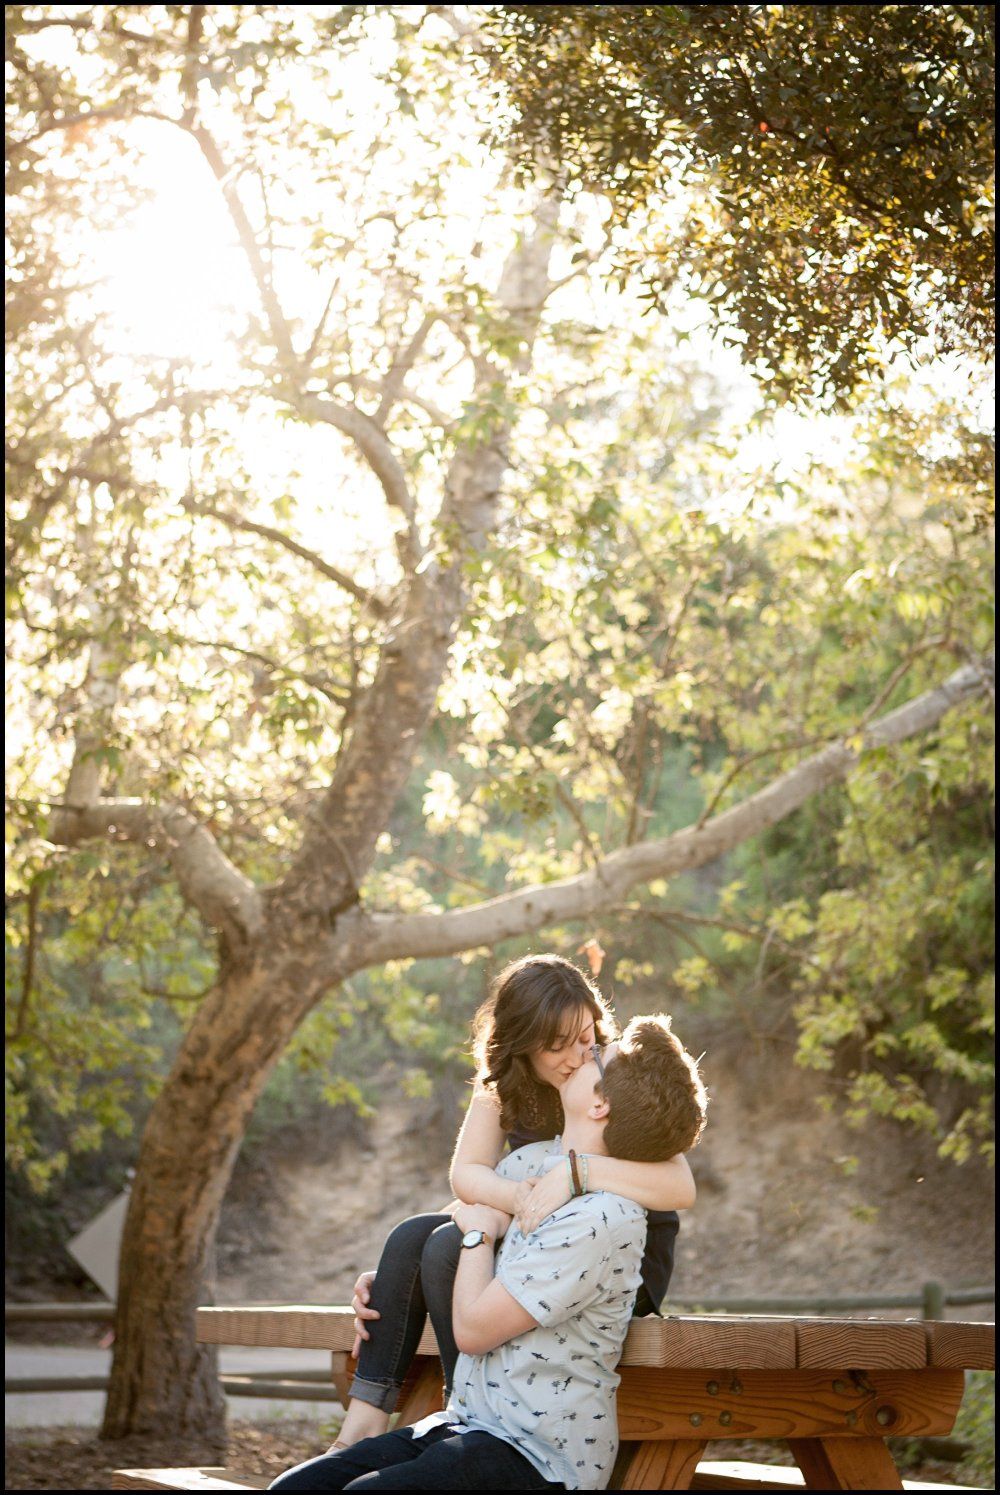 blog_cassia_karin_photography_lux_aeterna_lili_max_engagement_shoot_field_green_picnic_thousand_oaks_southern_california_purple_dress_curls-74.jpg